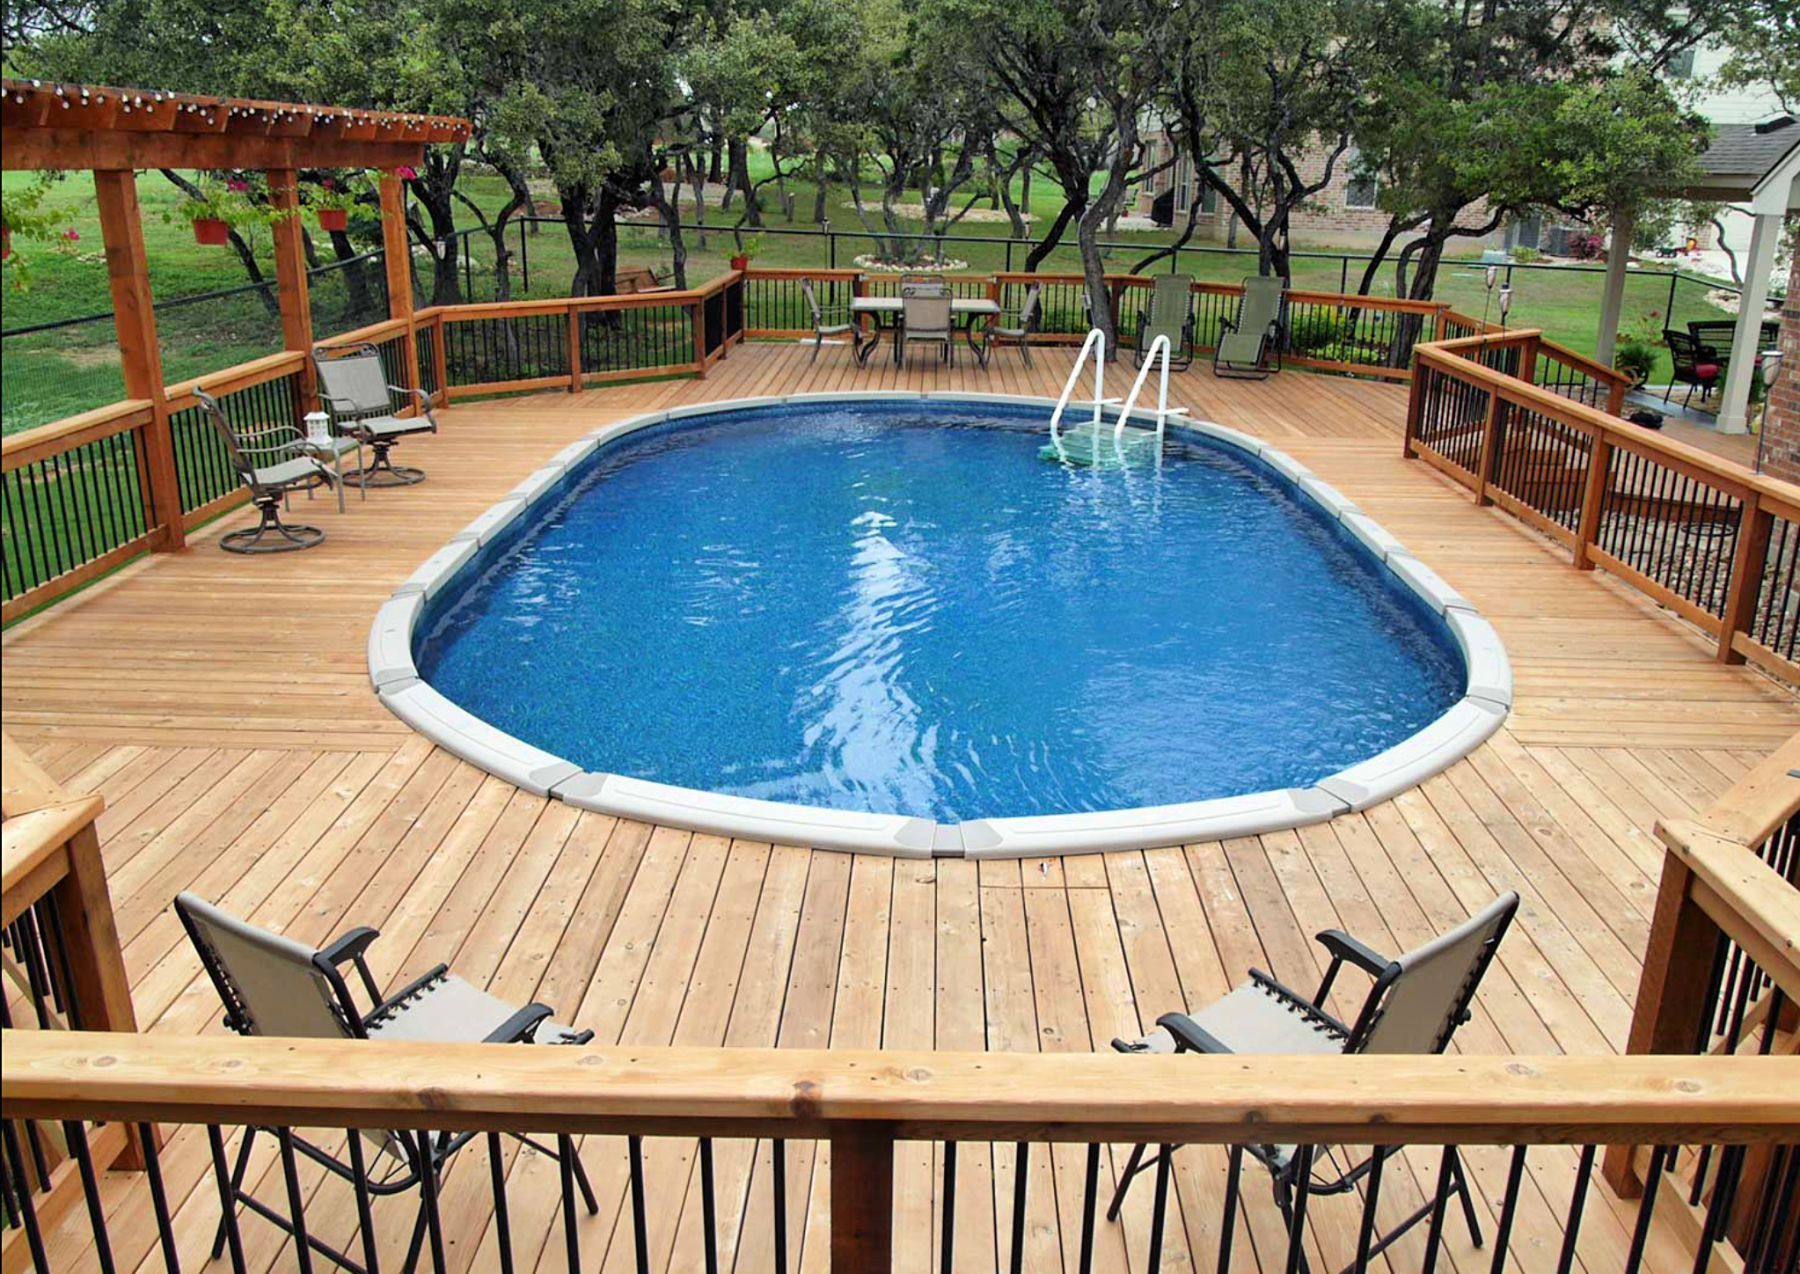 Admirable Popular Rectangle Above Ground Pool With Deck Rectangle Above Ground Pool With Deck Popular Swimming Pool Designs Swimming Pool Decks Pool Deck Plans